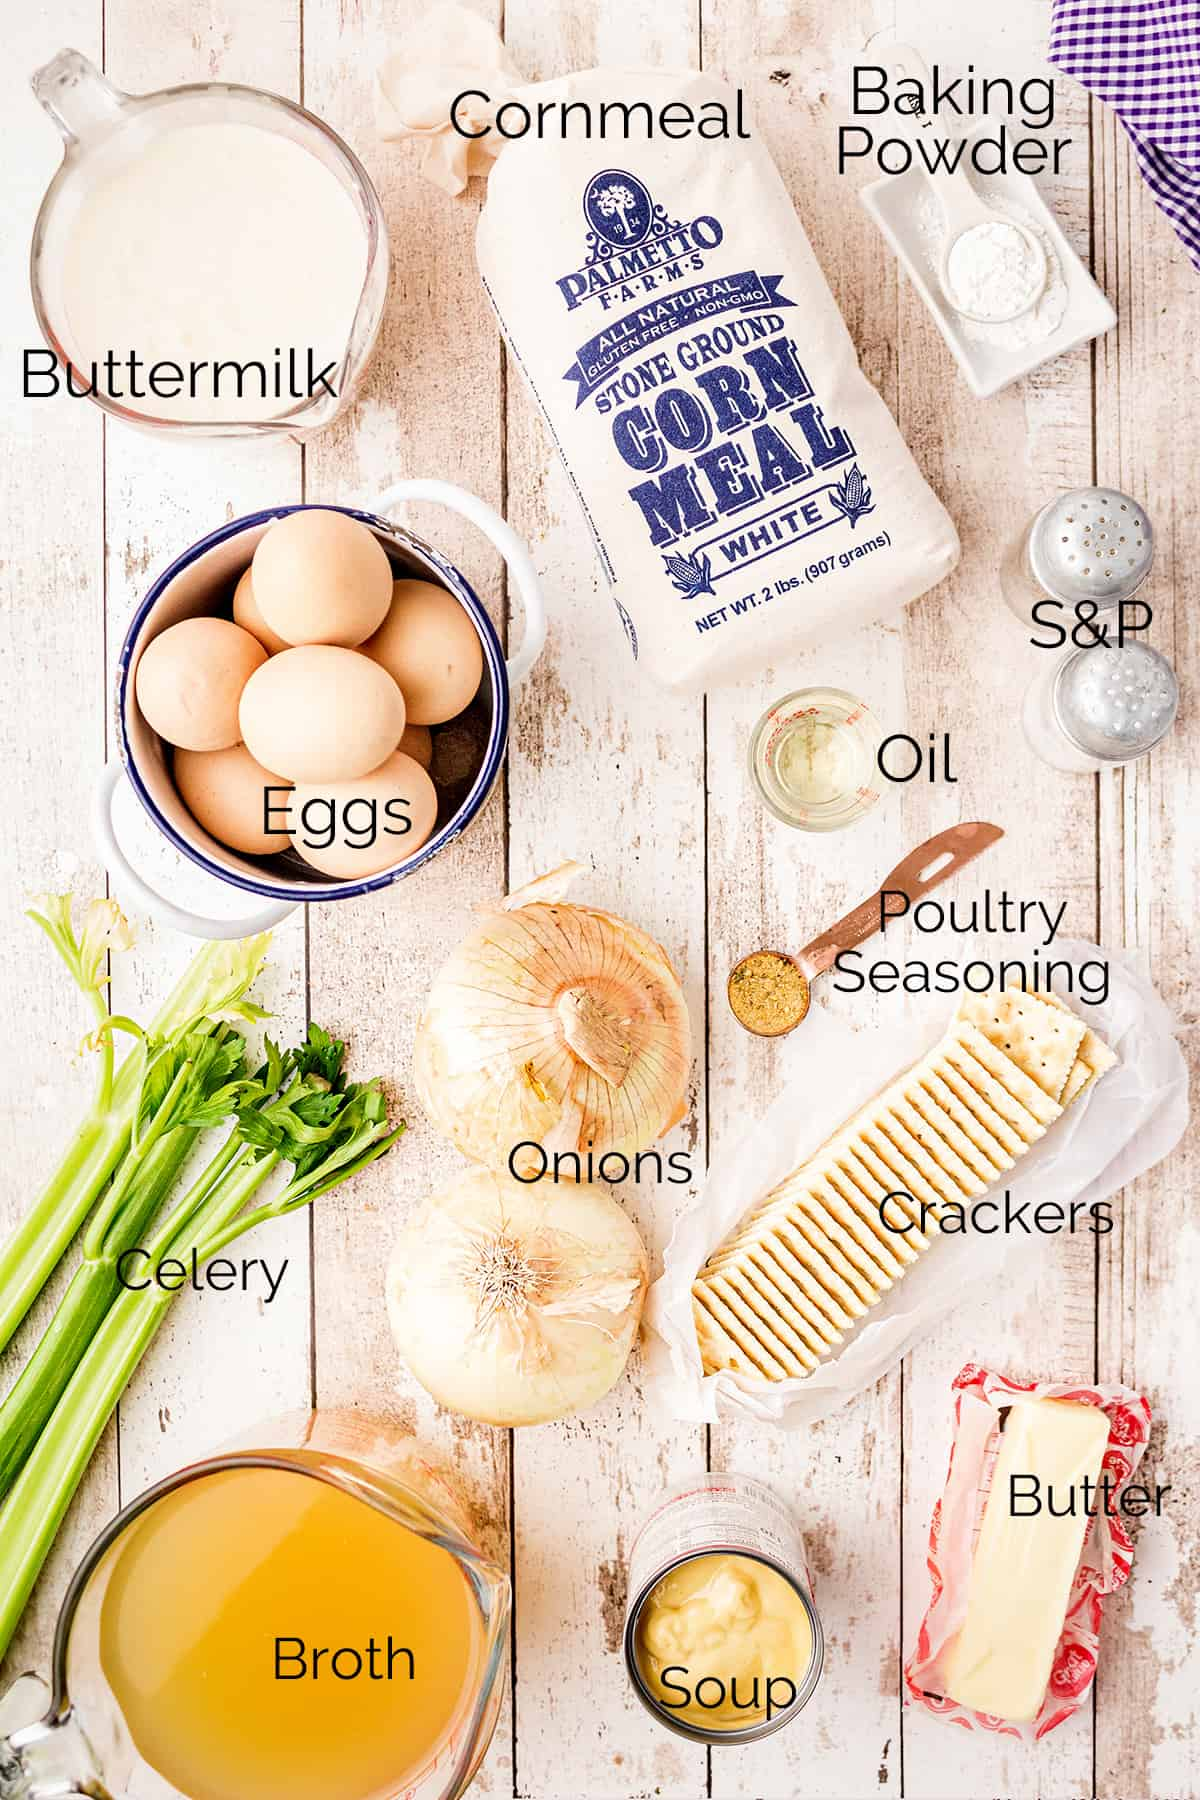 Ingredients needed to make southern cornbread dressing.